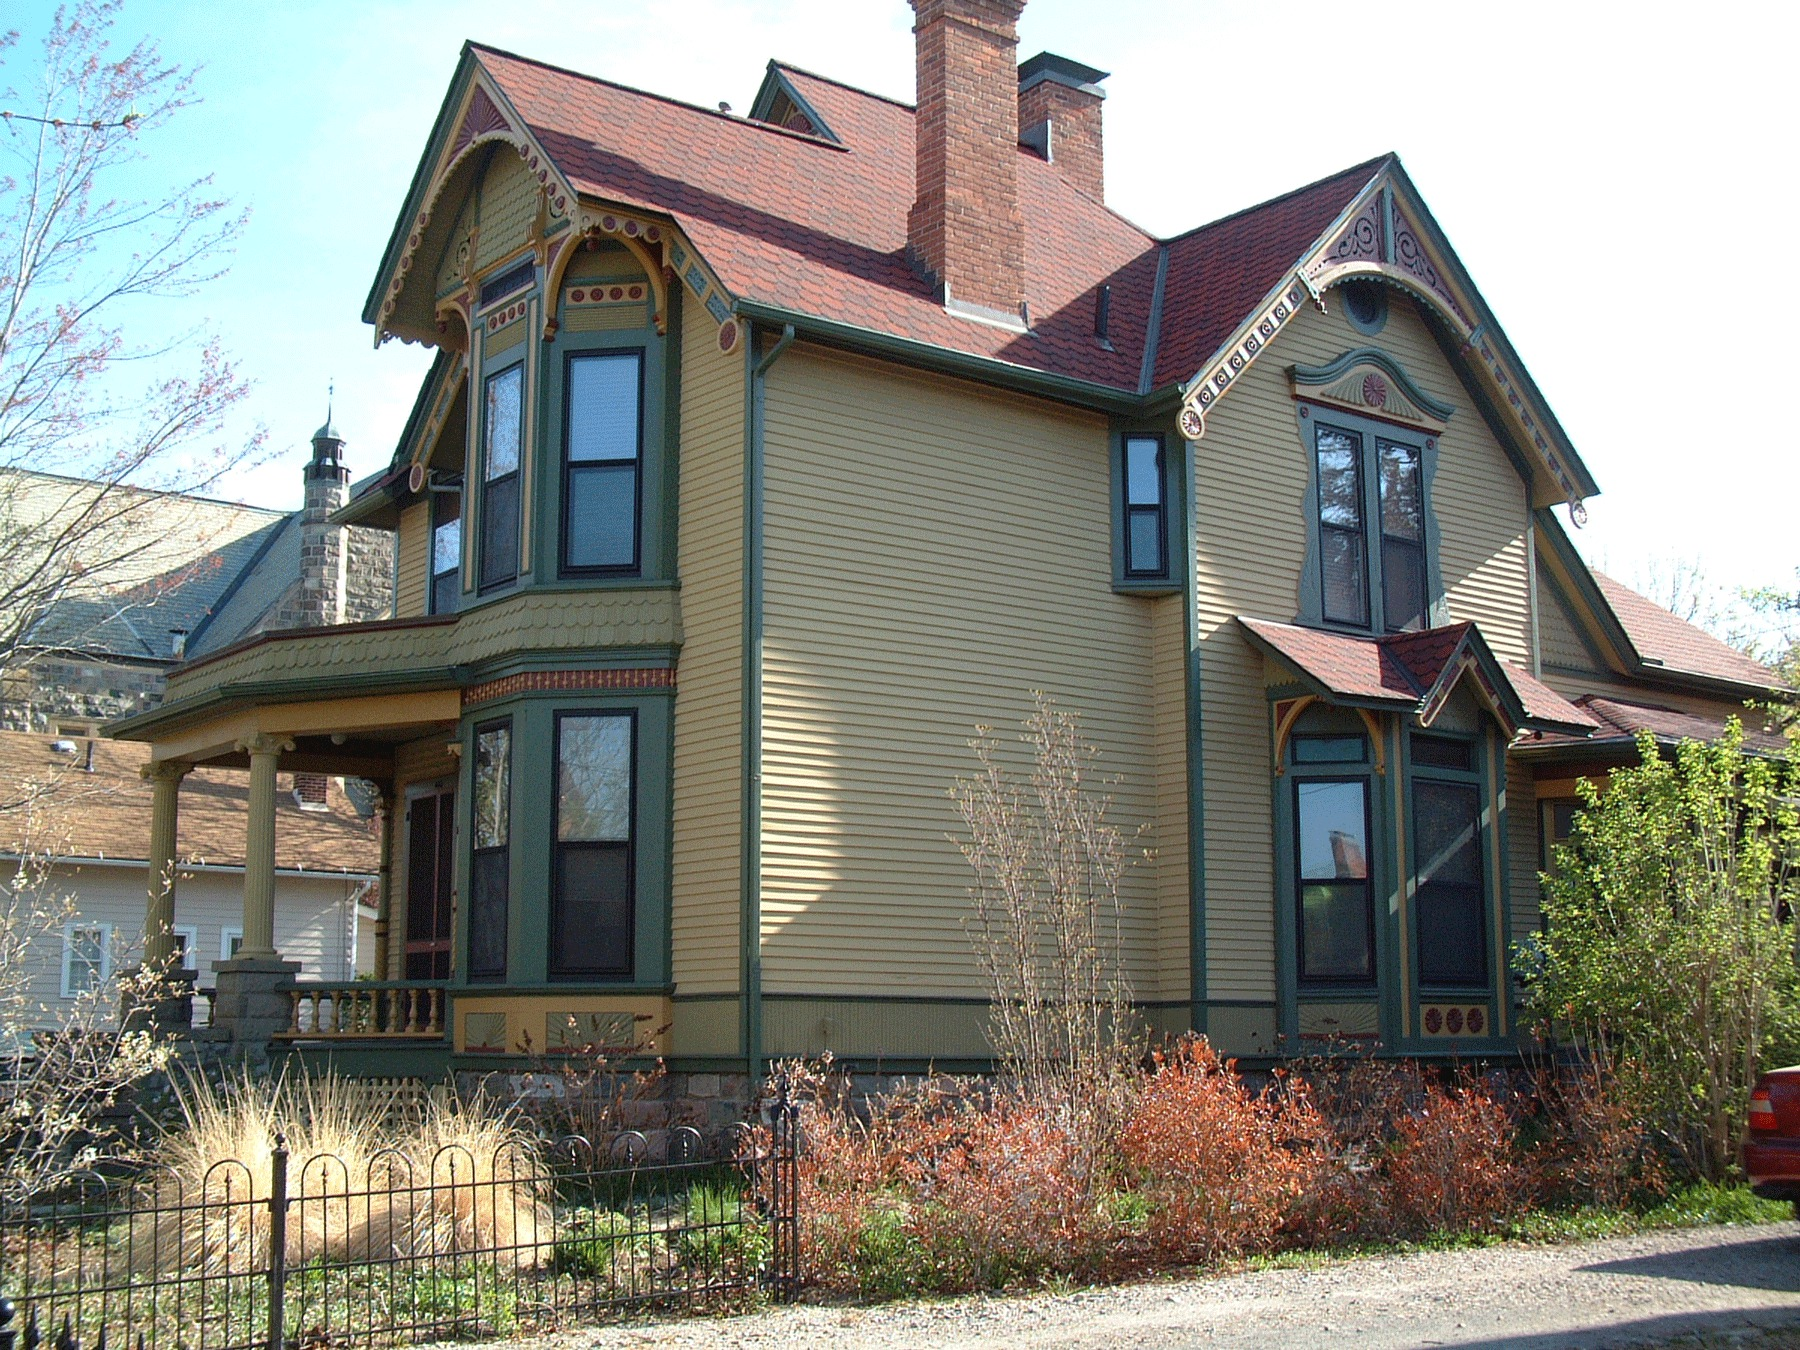 George and Emma Wahr House, 1890 image